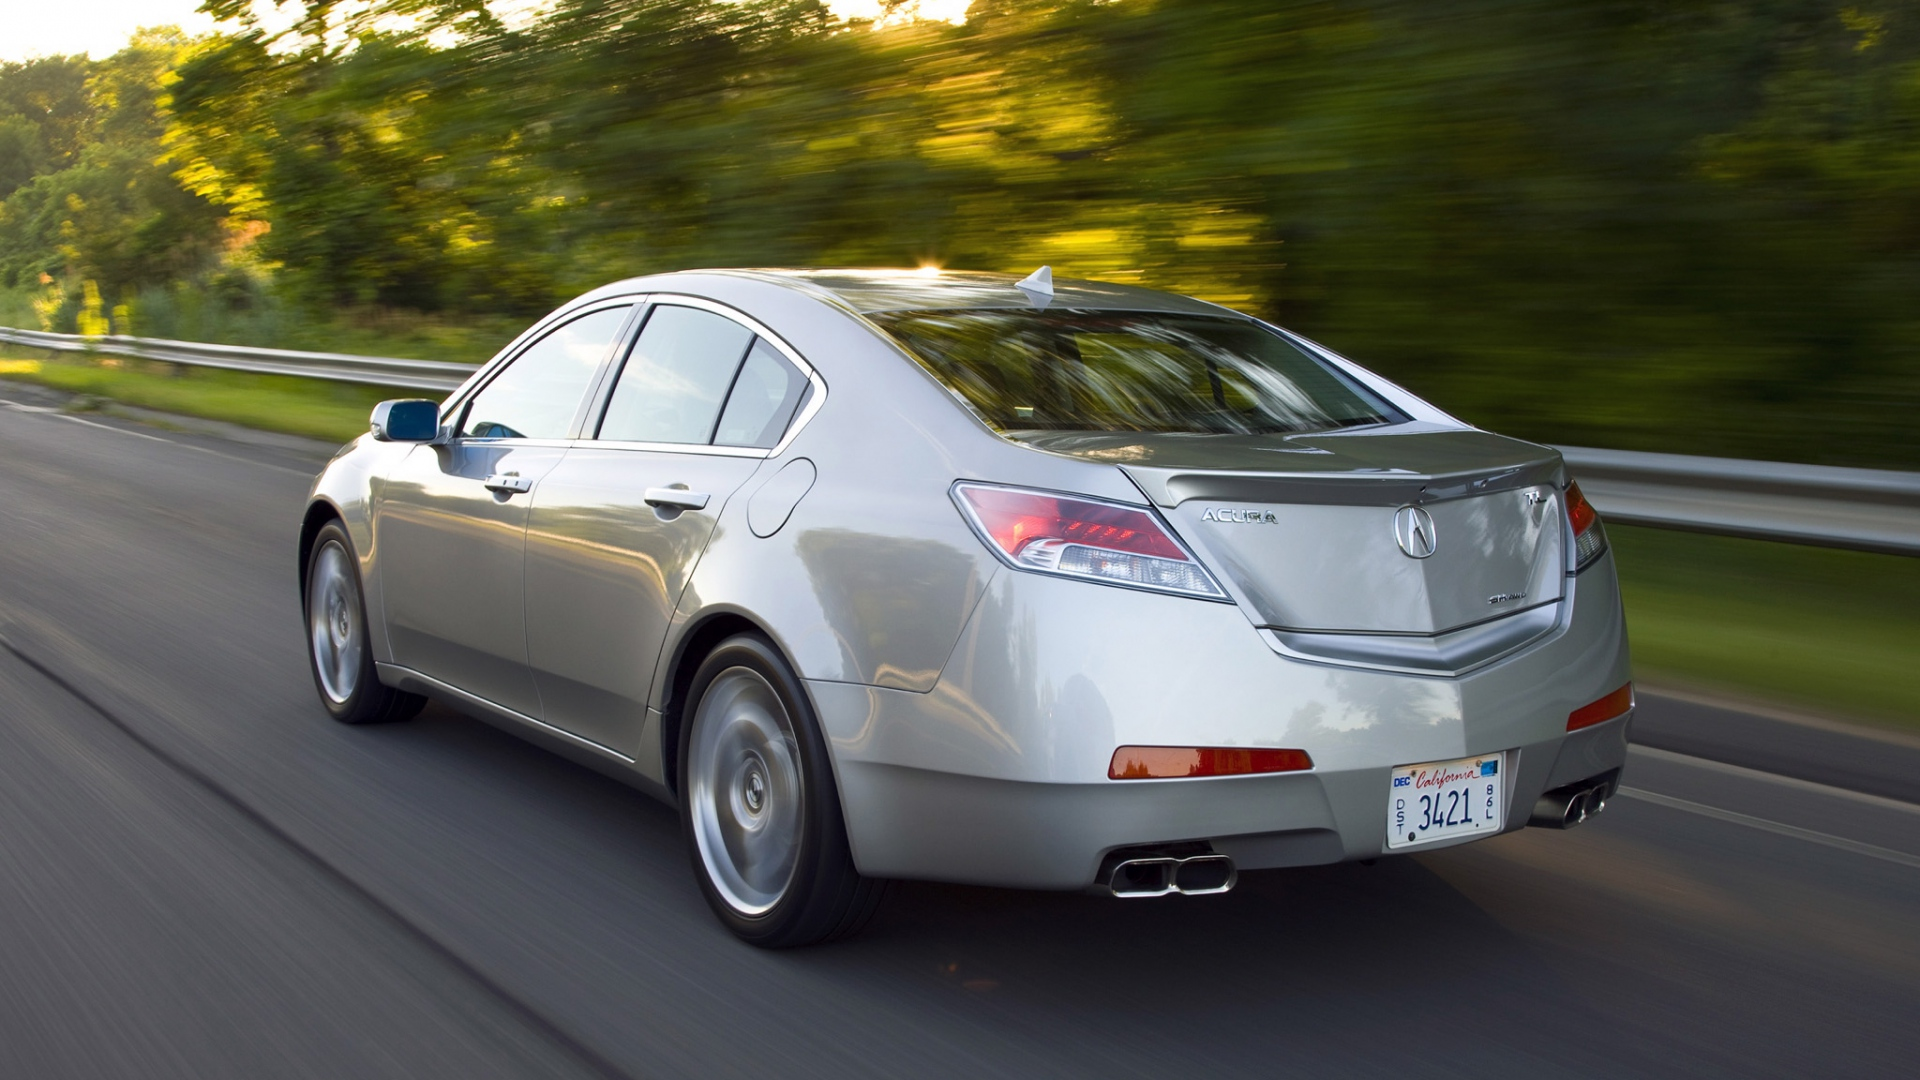 1920x1080-acura-tl-metallic-gray-side-view-style-cars-speed-trees-highway-wallpaper-wpc900966